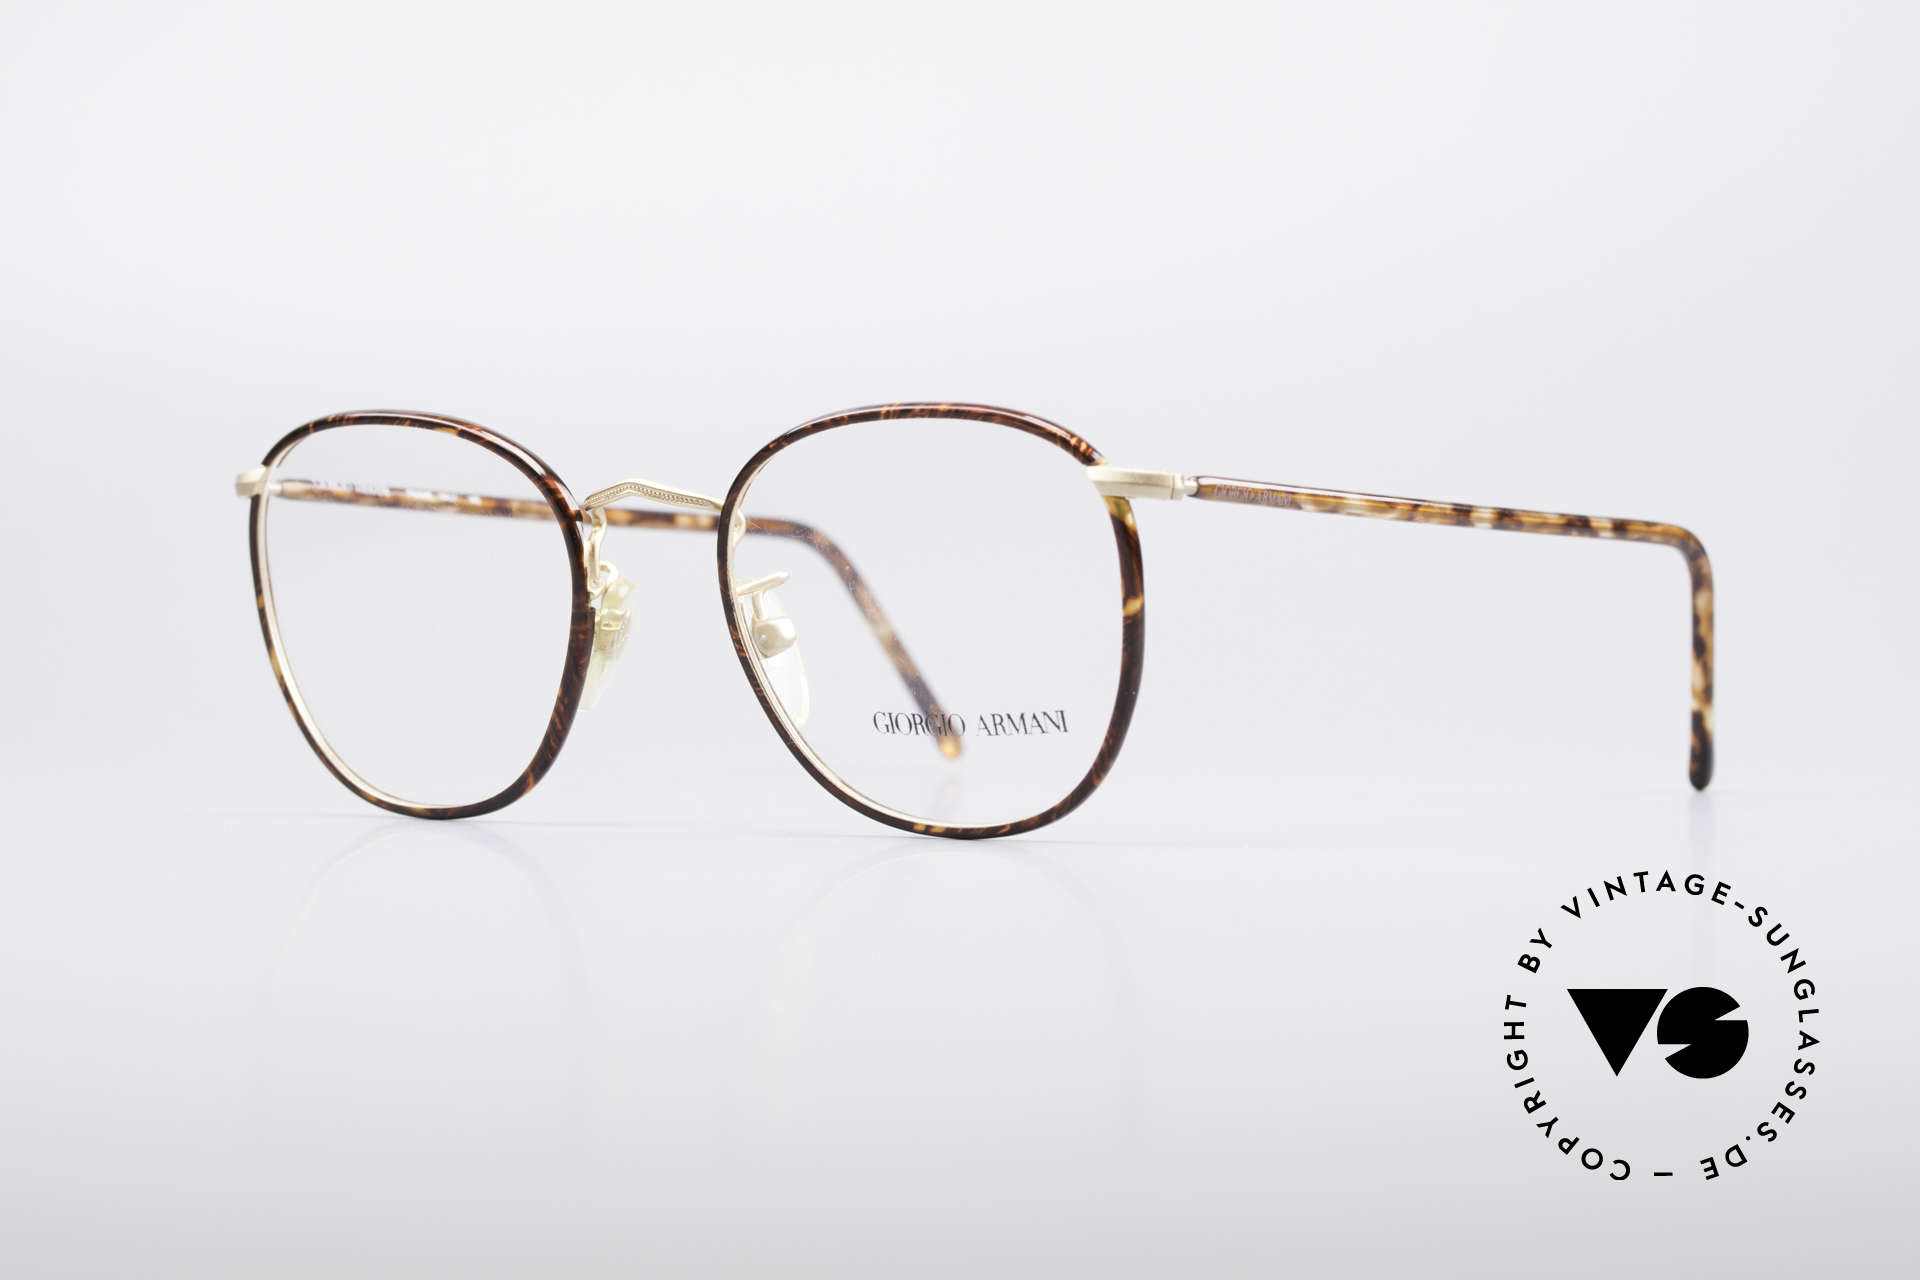 Giorgio Armani 141 Square Panto Glasses, a combination of chestnut brown / tortoise and gold, Made for Men